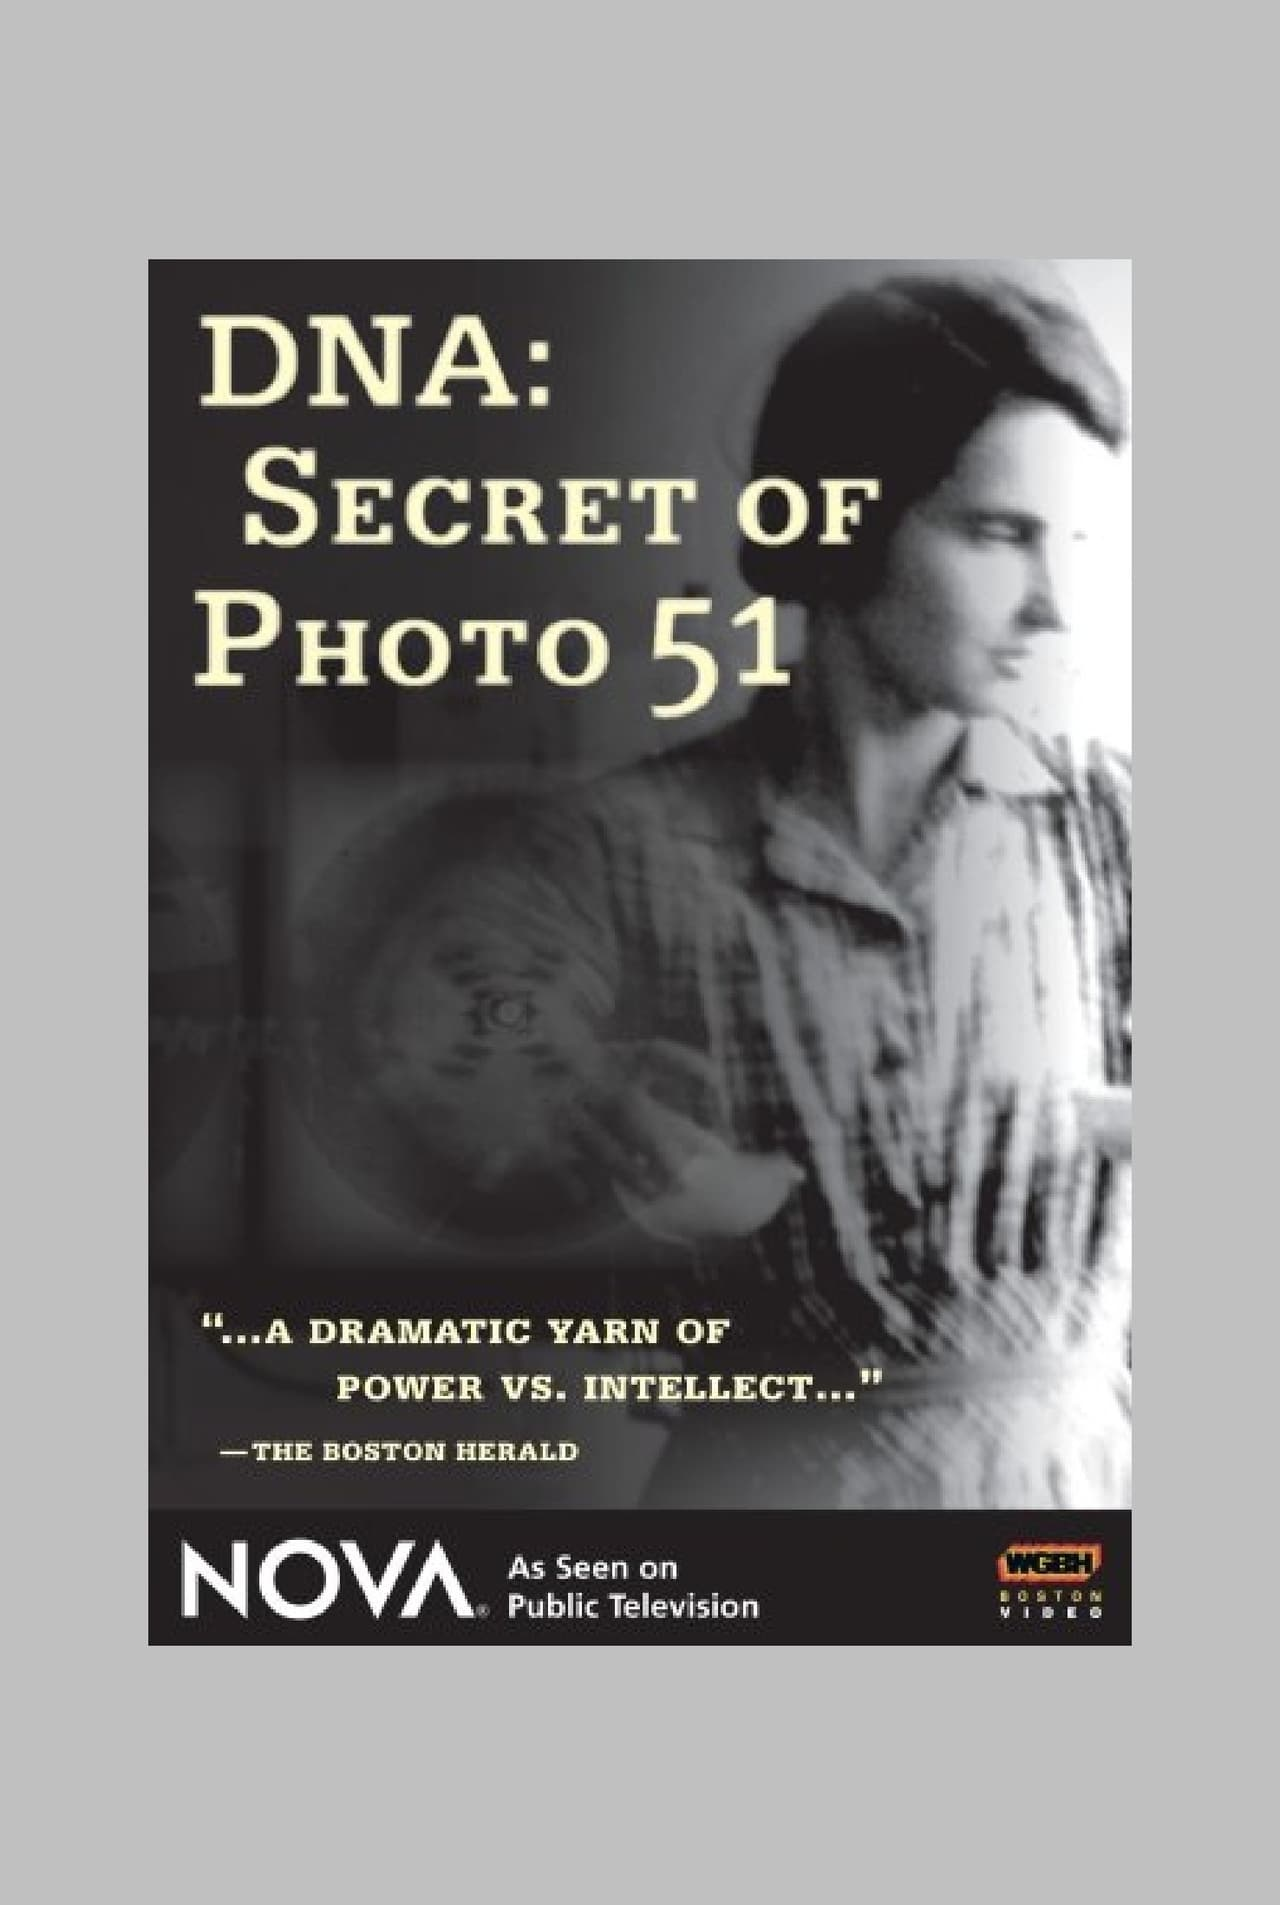 DNA: Secret of Photo 51